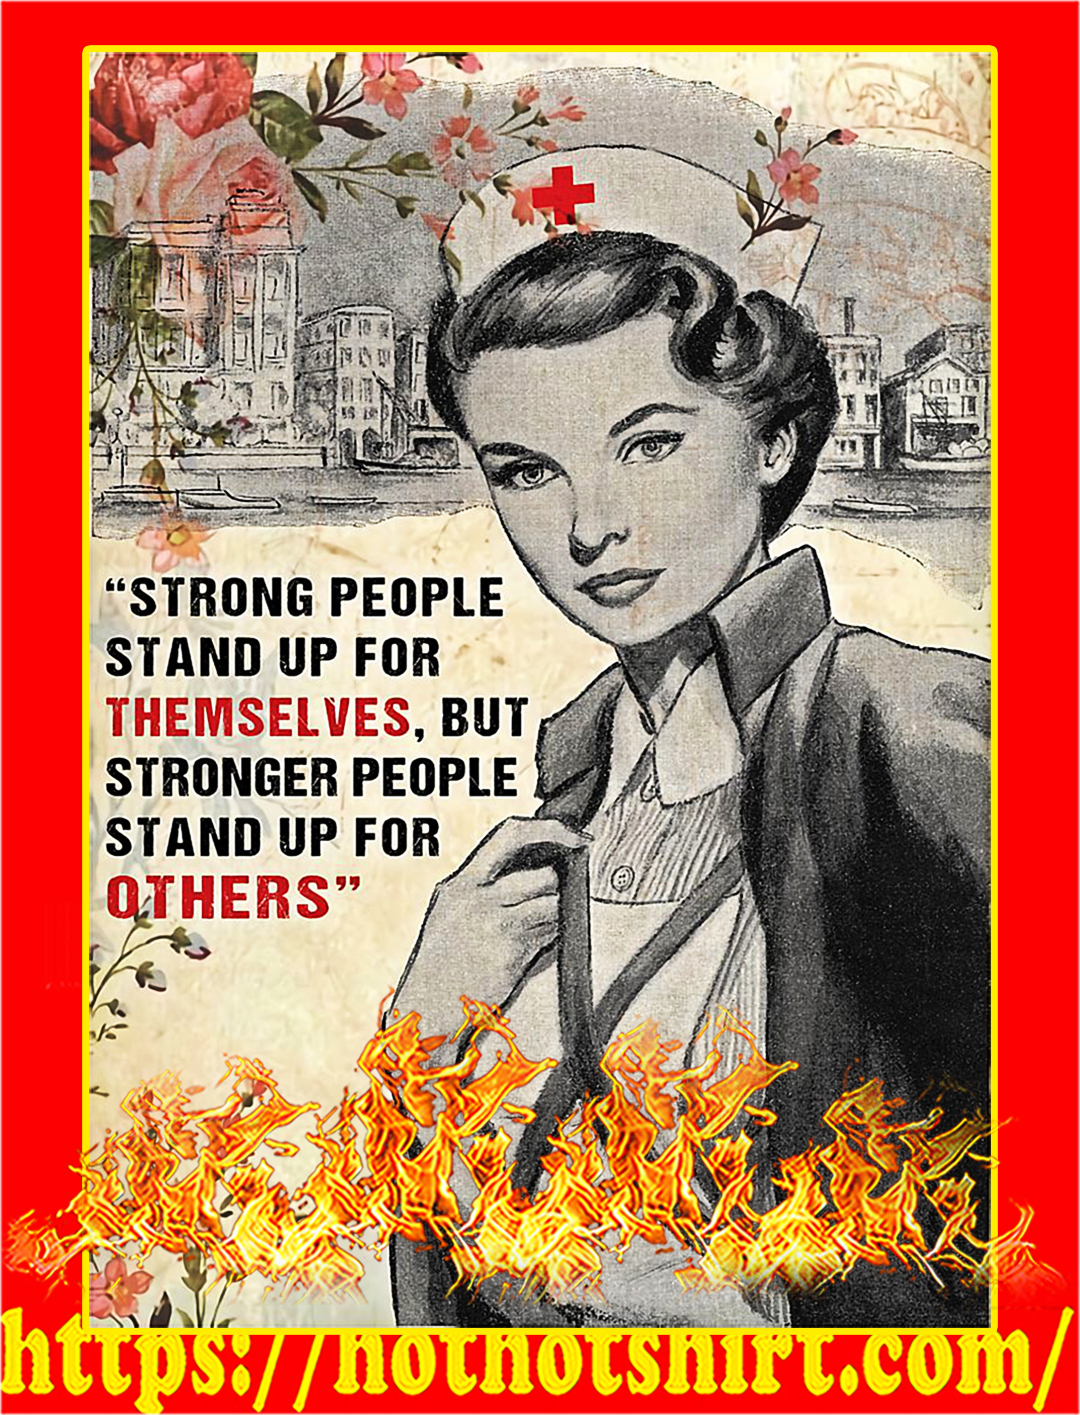 Strong people stand up for themselves nurse poster - A2